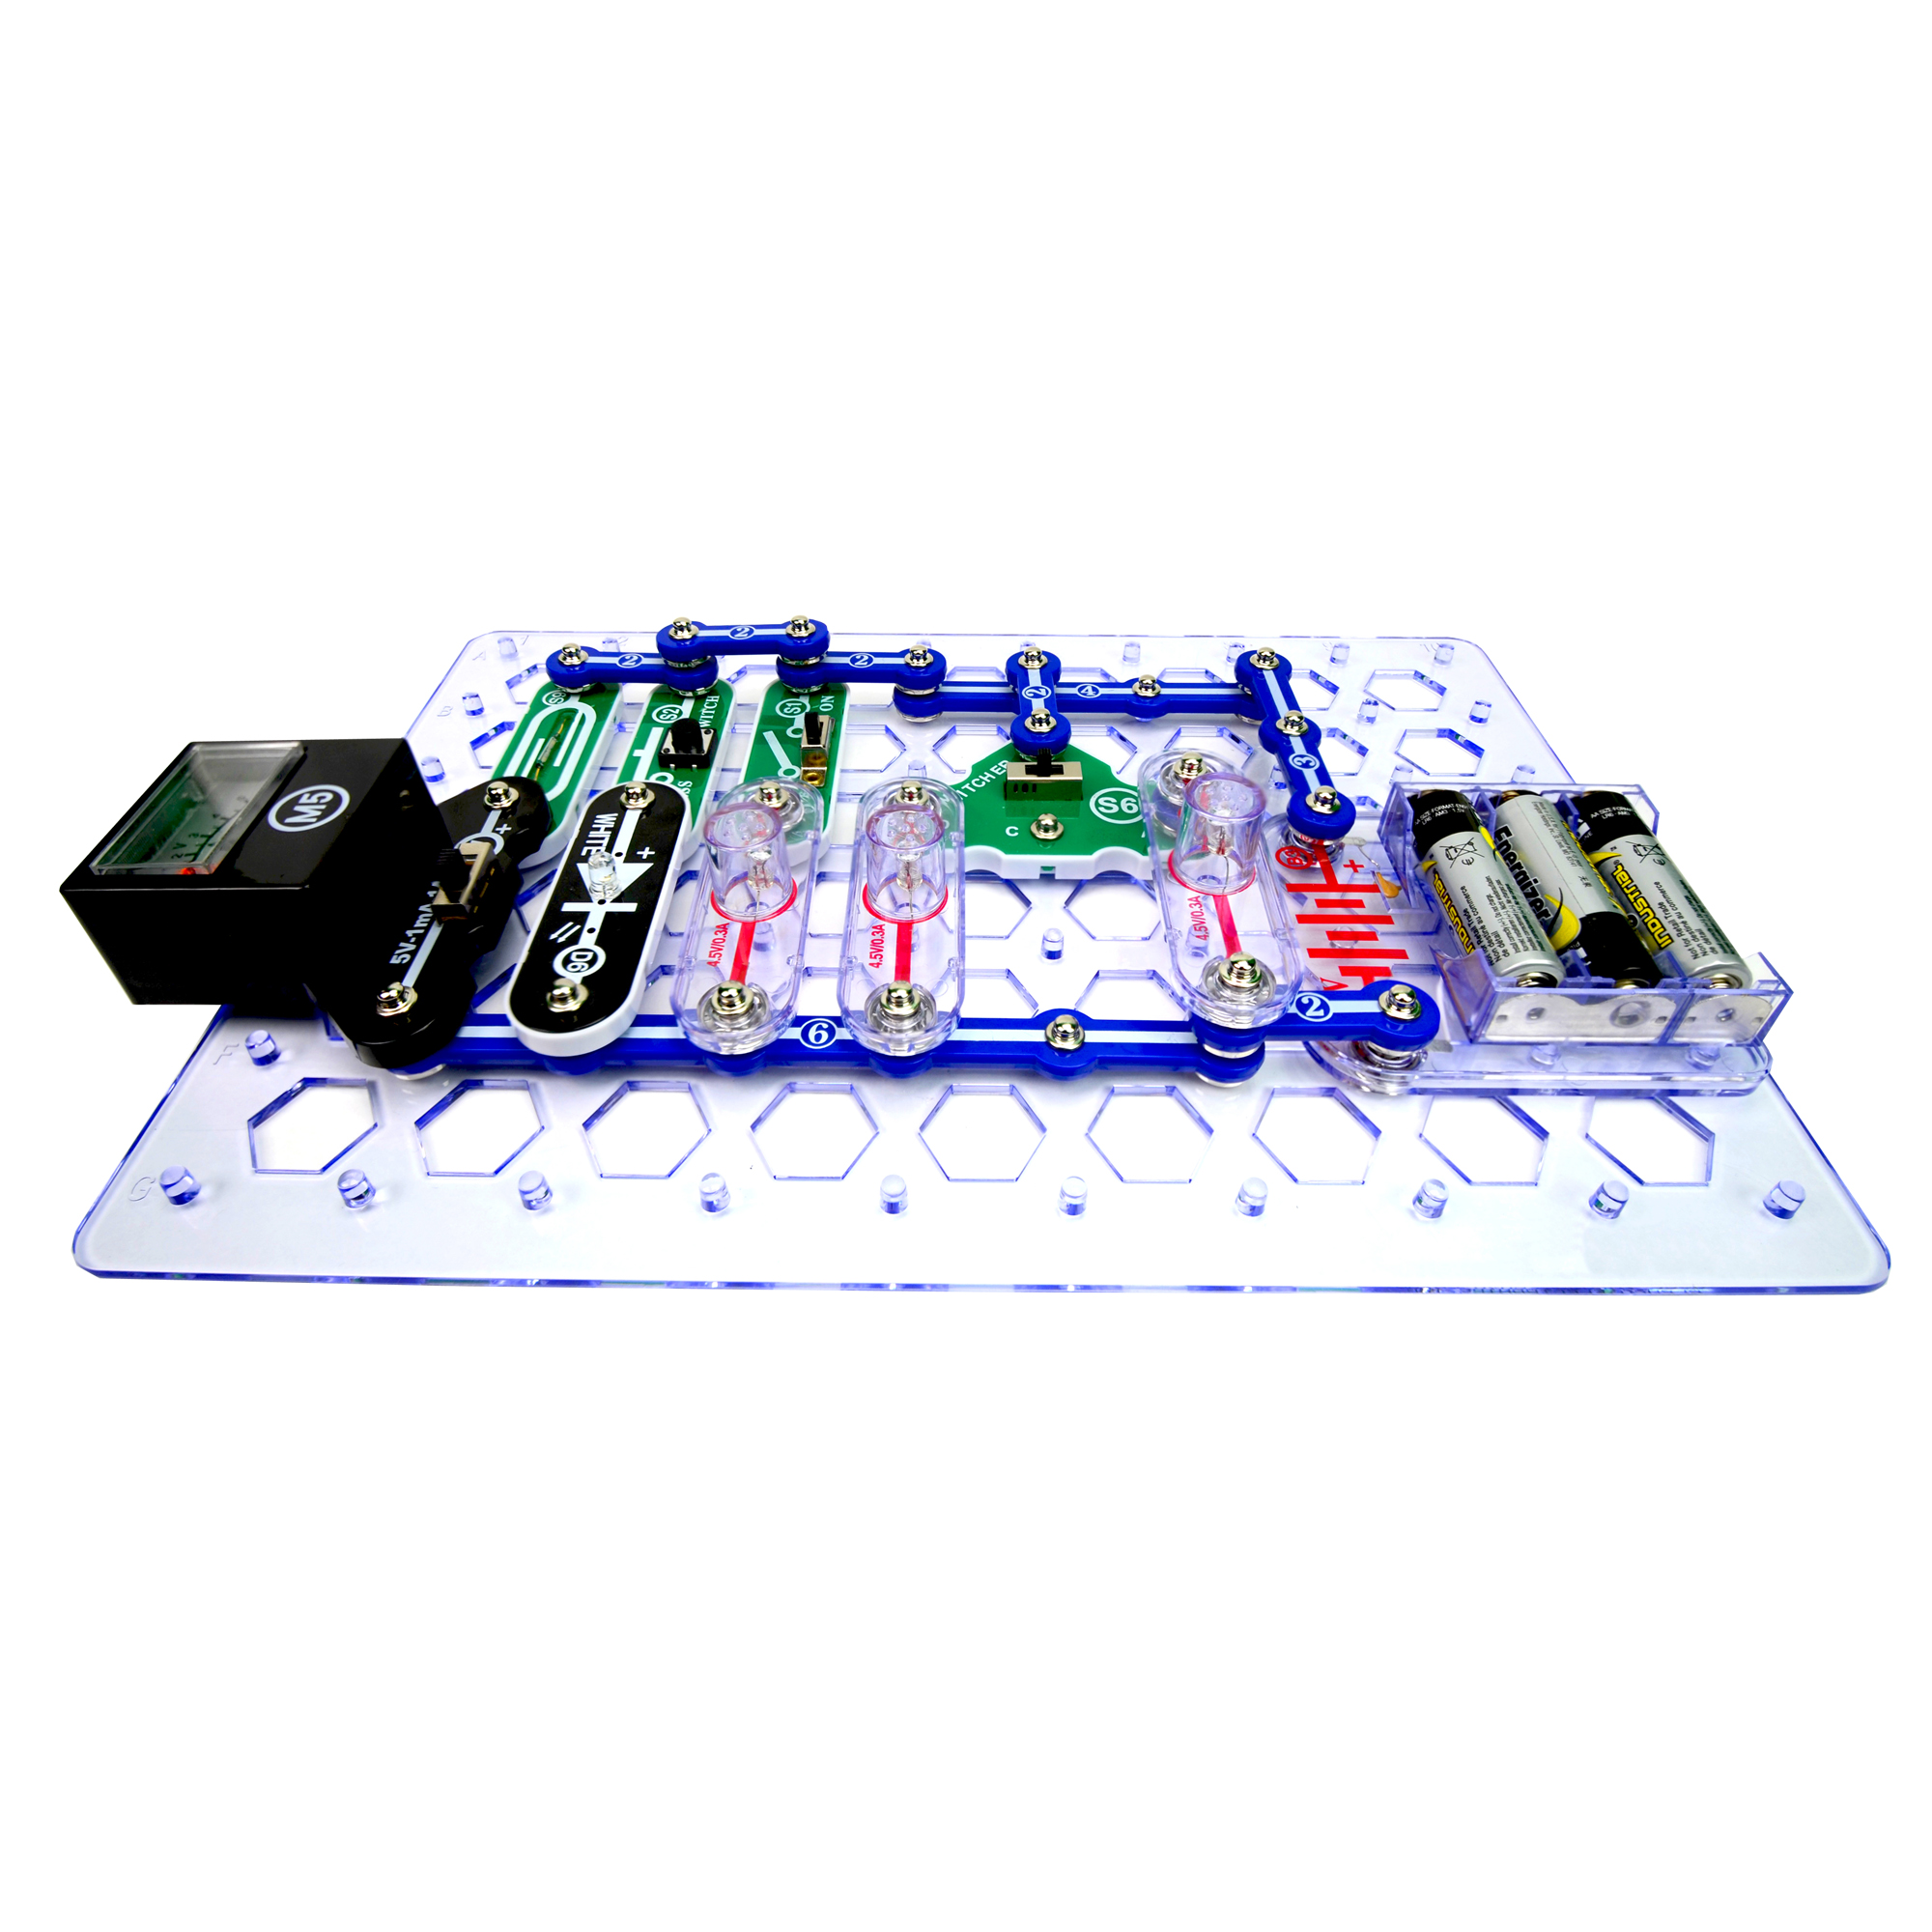 Snap Circuits Stem Elenco Lights Electric Circuit Science Kit By Previous Next